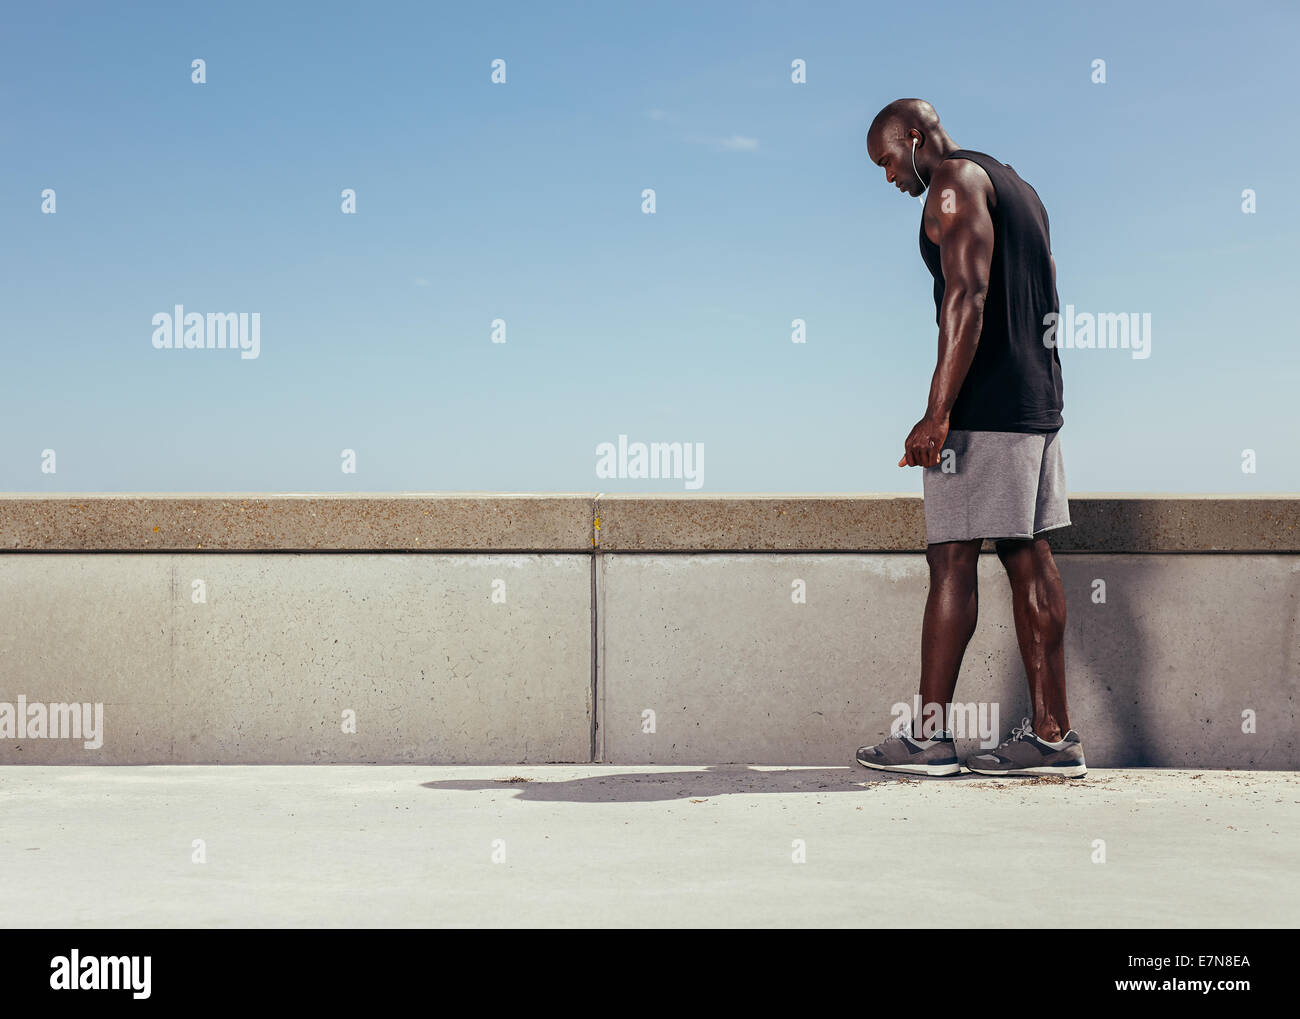 Image muscular young man on a walkway getting ready for his run. Focused male athlete preparing for his running - Stock Image